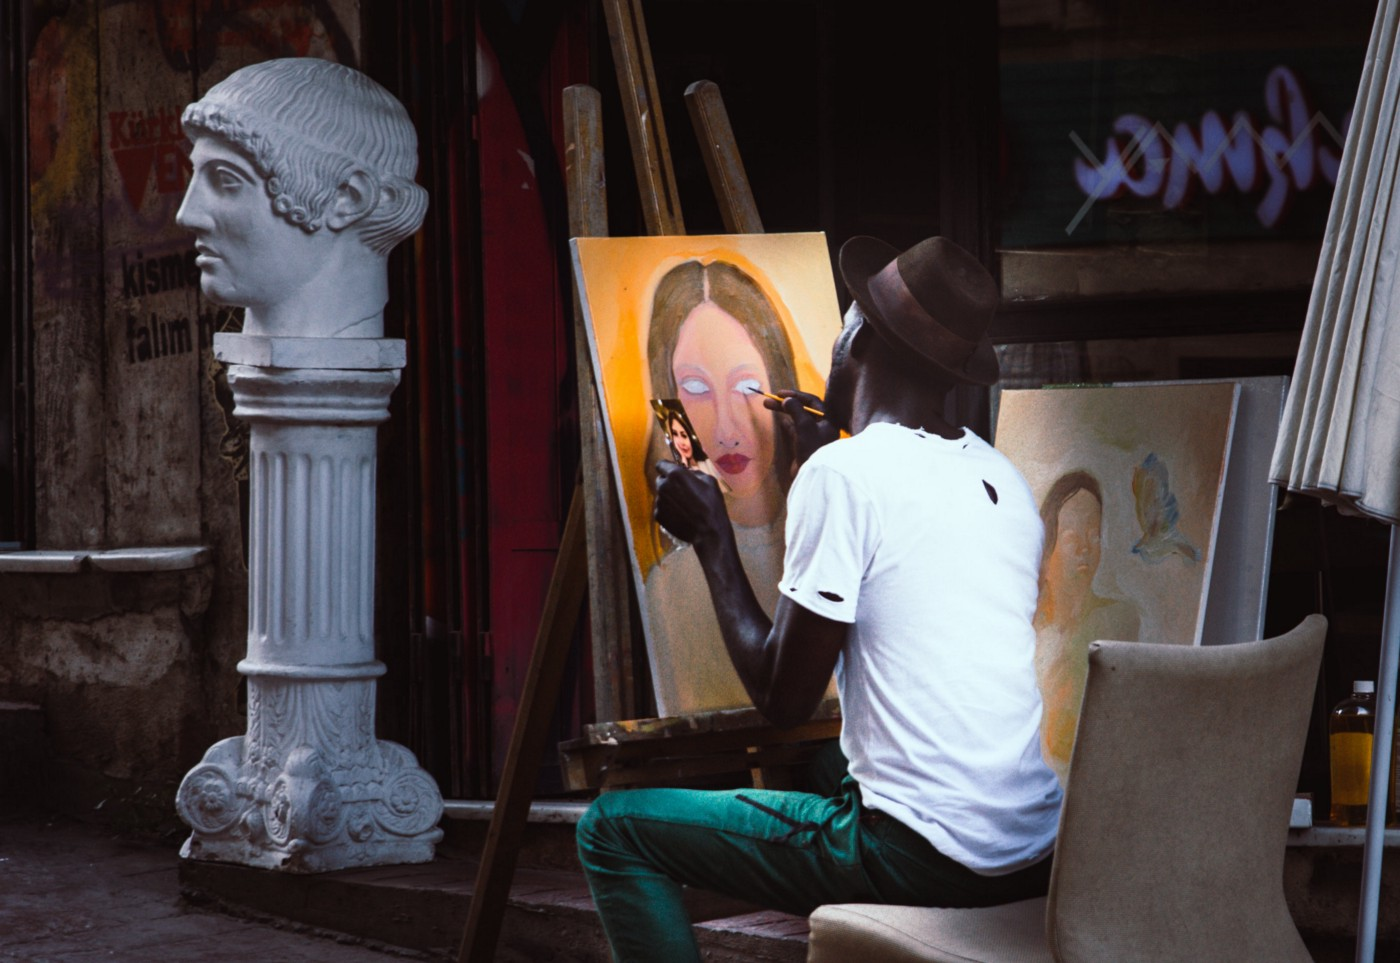 A Black man sits in a room painting a portrait of a woman. On the side of the room is a statue with a bust of a man on top of it.